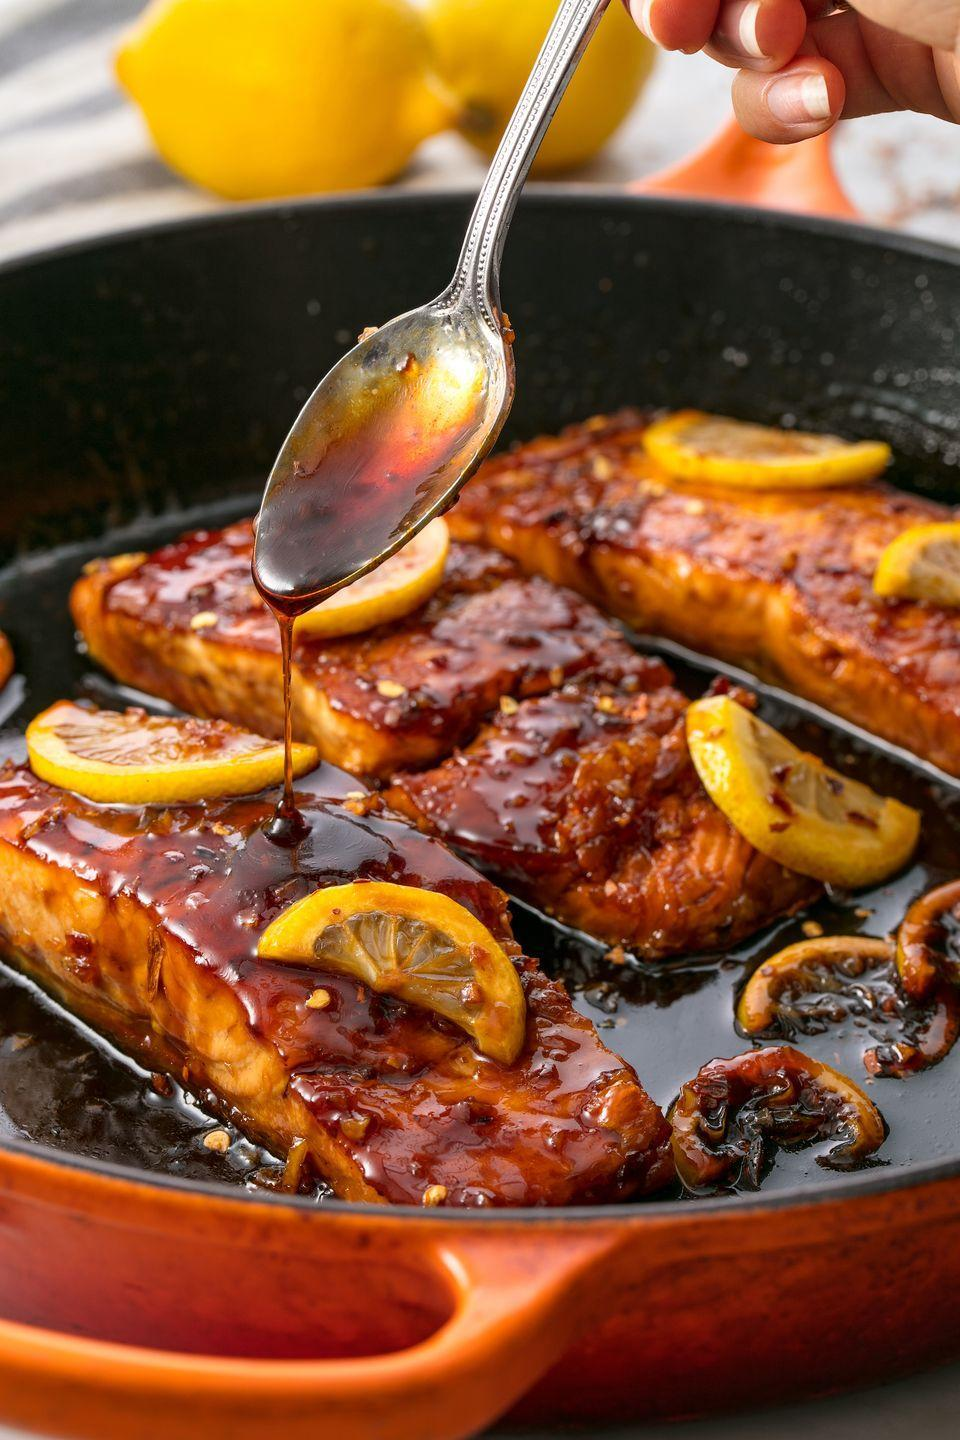 """<p>You can't beat this sticky, delicious glaze.</p><p>Get the recipe from <a href=""""https://www.delish.com/cooking/recipe-ideas/recipes/a55762/honey-garlic-glazed-salmon-recipe/"""" rel=""""nofollow noopener"""" target=""""_blank"""" data-ylk=""""slk:Delish"""" class=""""link rapid-noclick-resp"""">Delish</a>.</p>"""